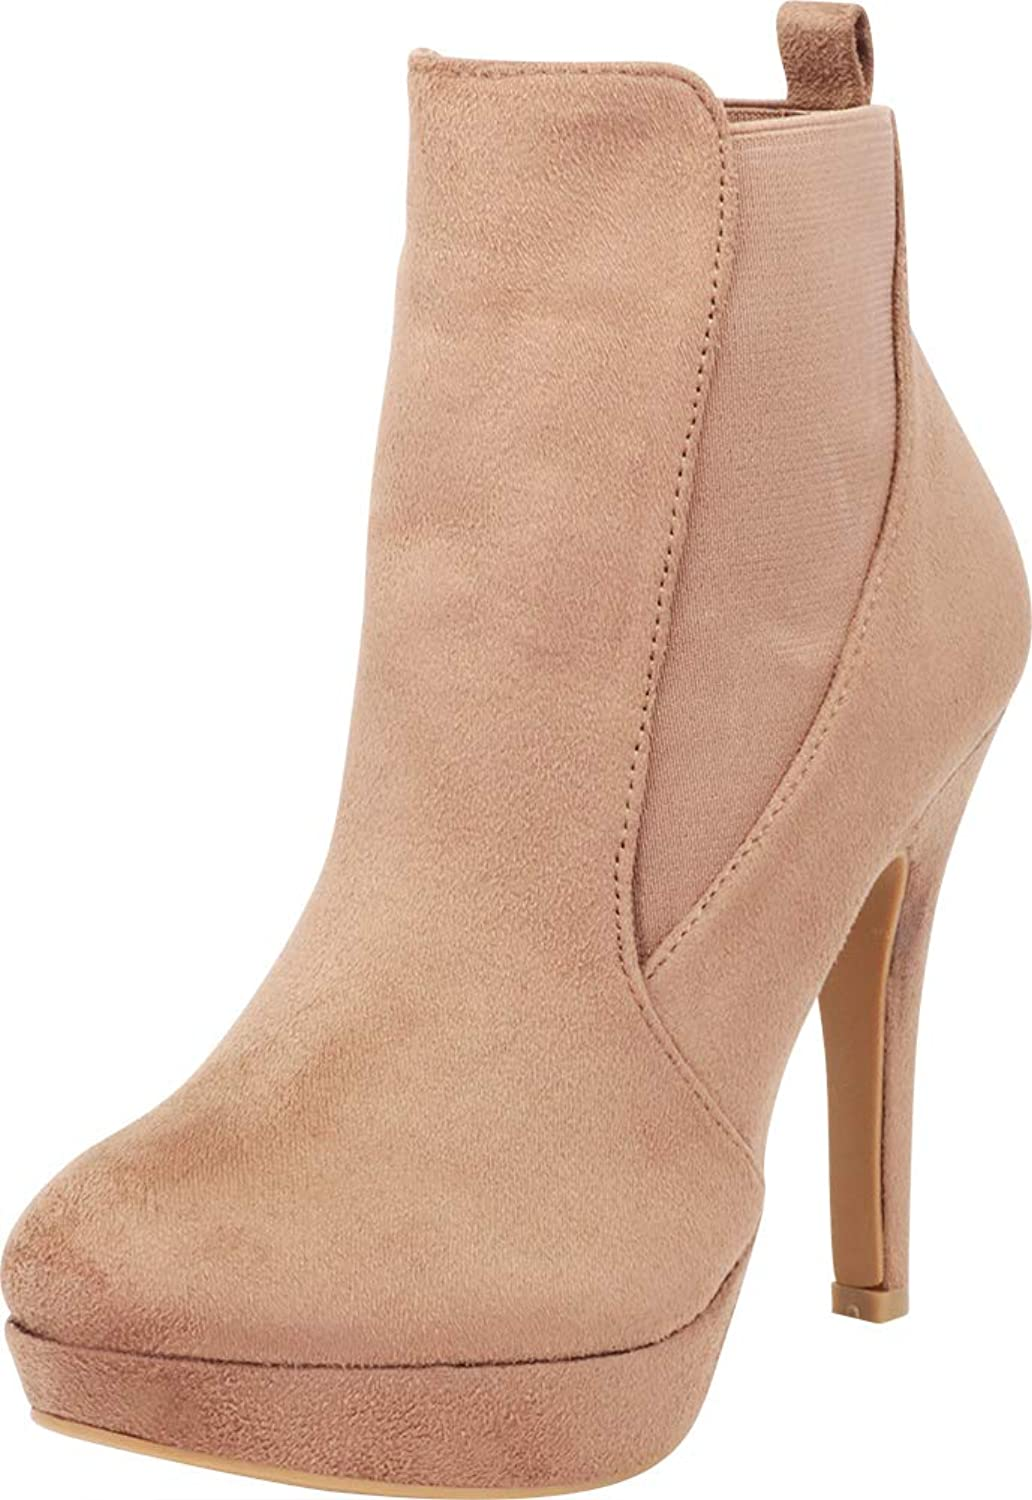 Cambridge Select Women's Stretch Slip-On Platform Siletto High Heel Ankle Bootie